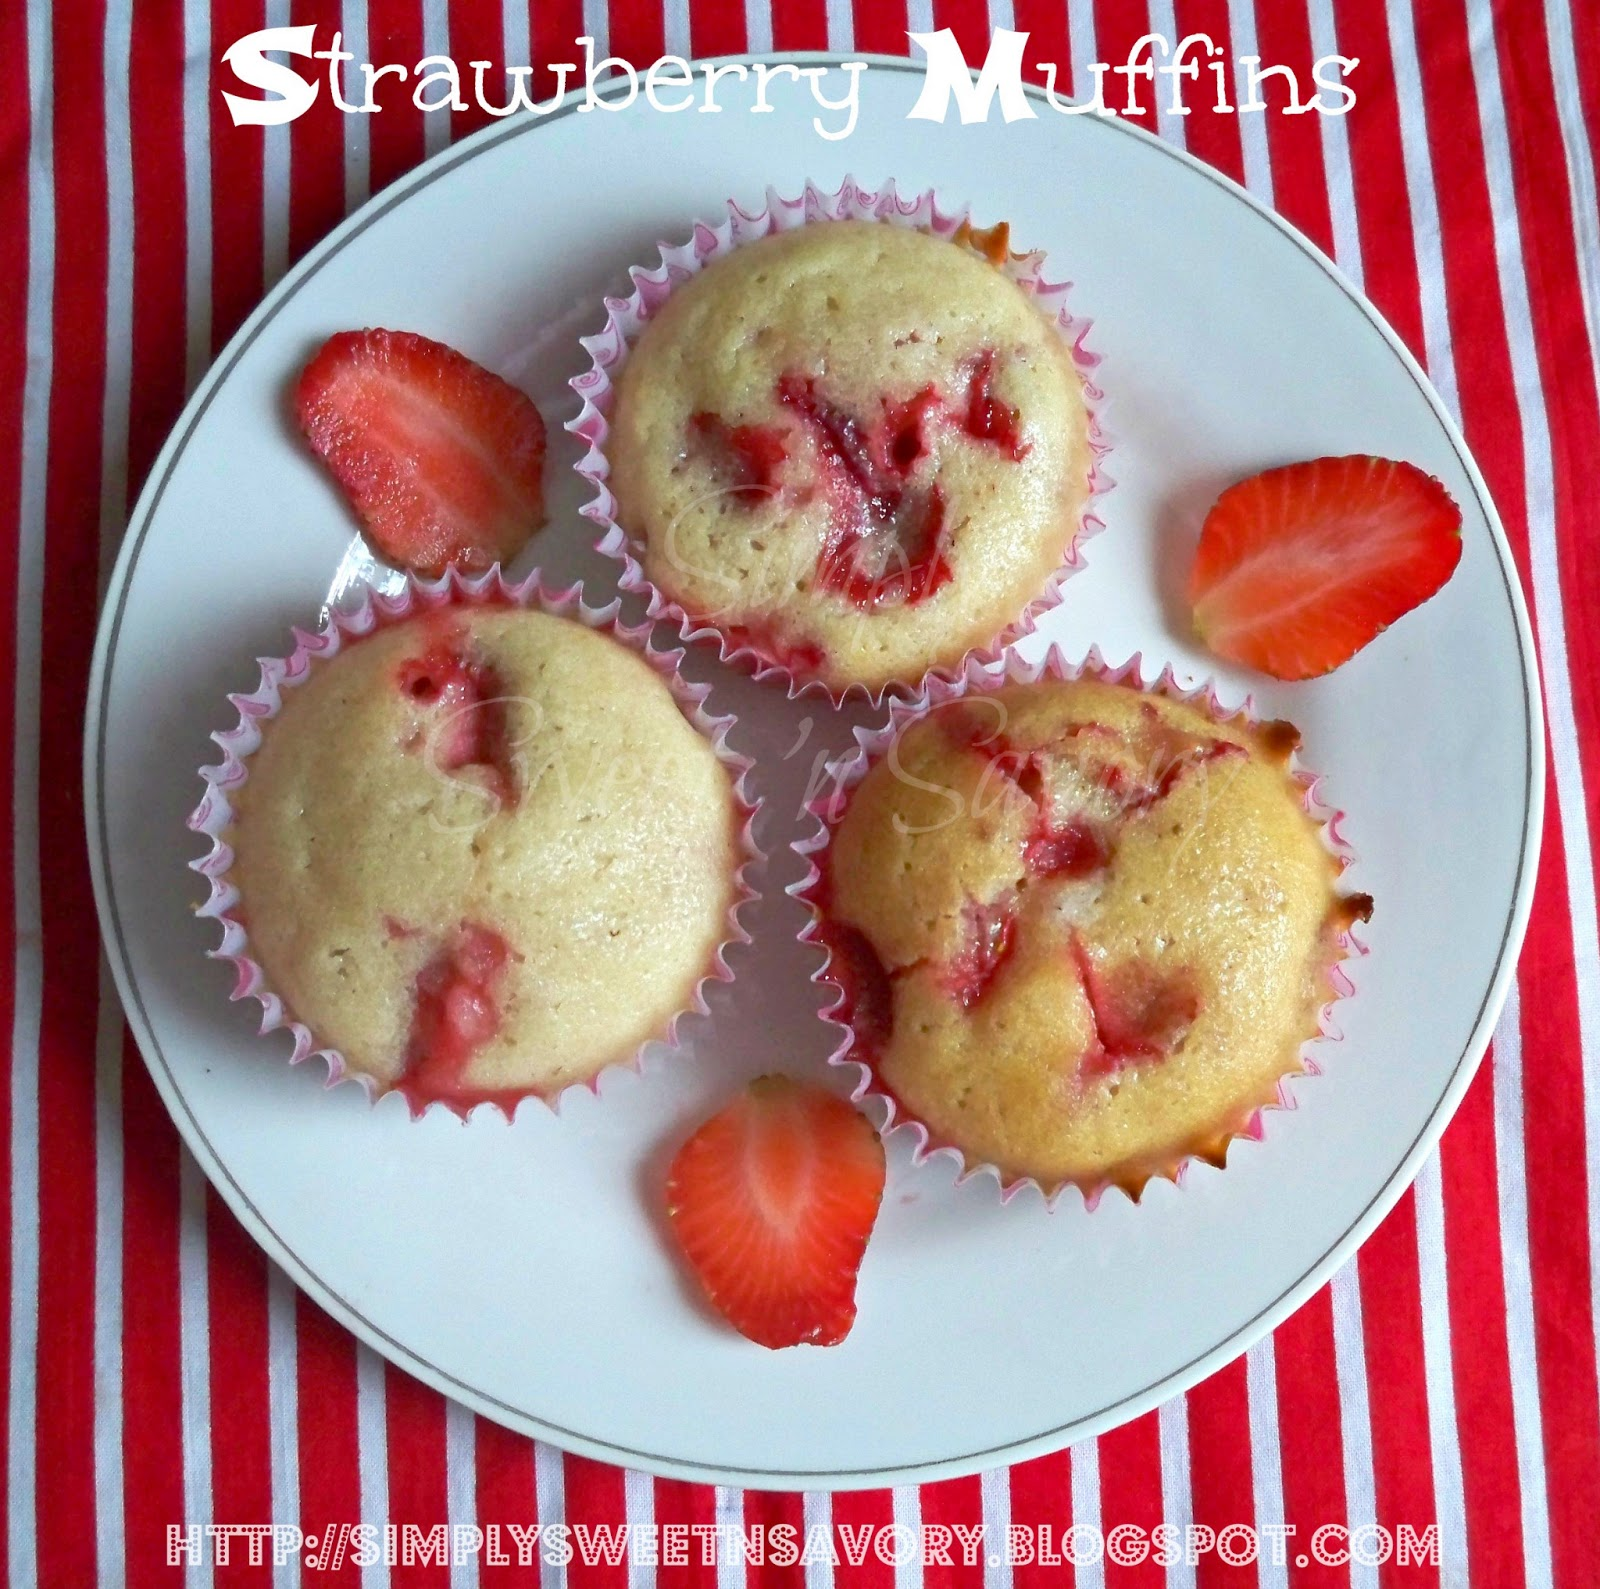 Simply Sweet 'n Savory: Strawberry Muffins